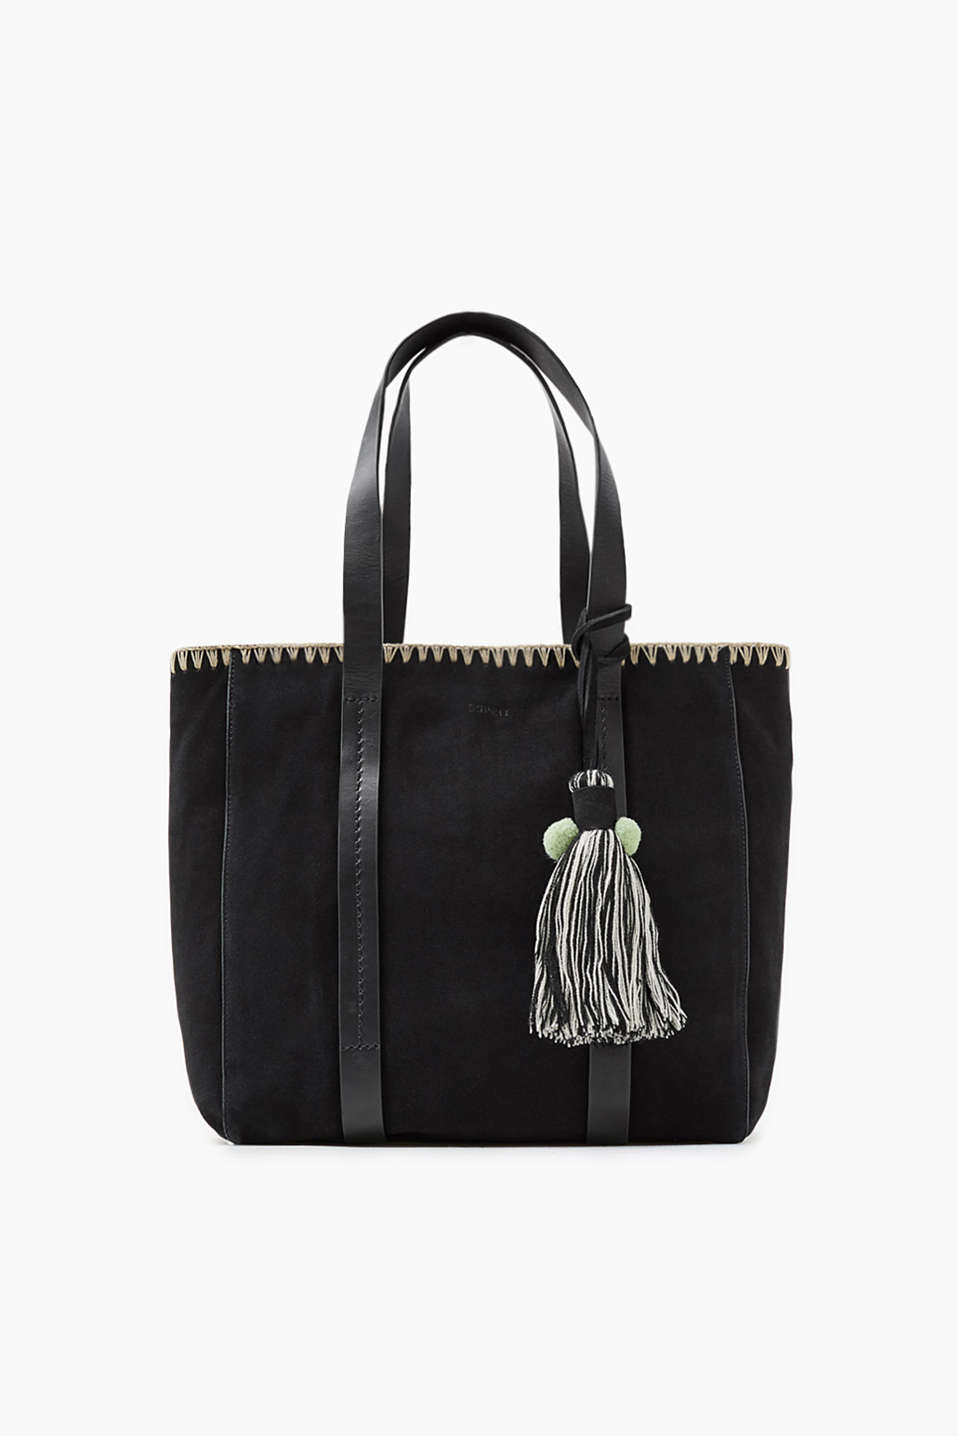 Made of soft cowhide leather: material mix shopper